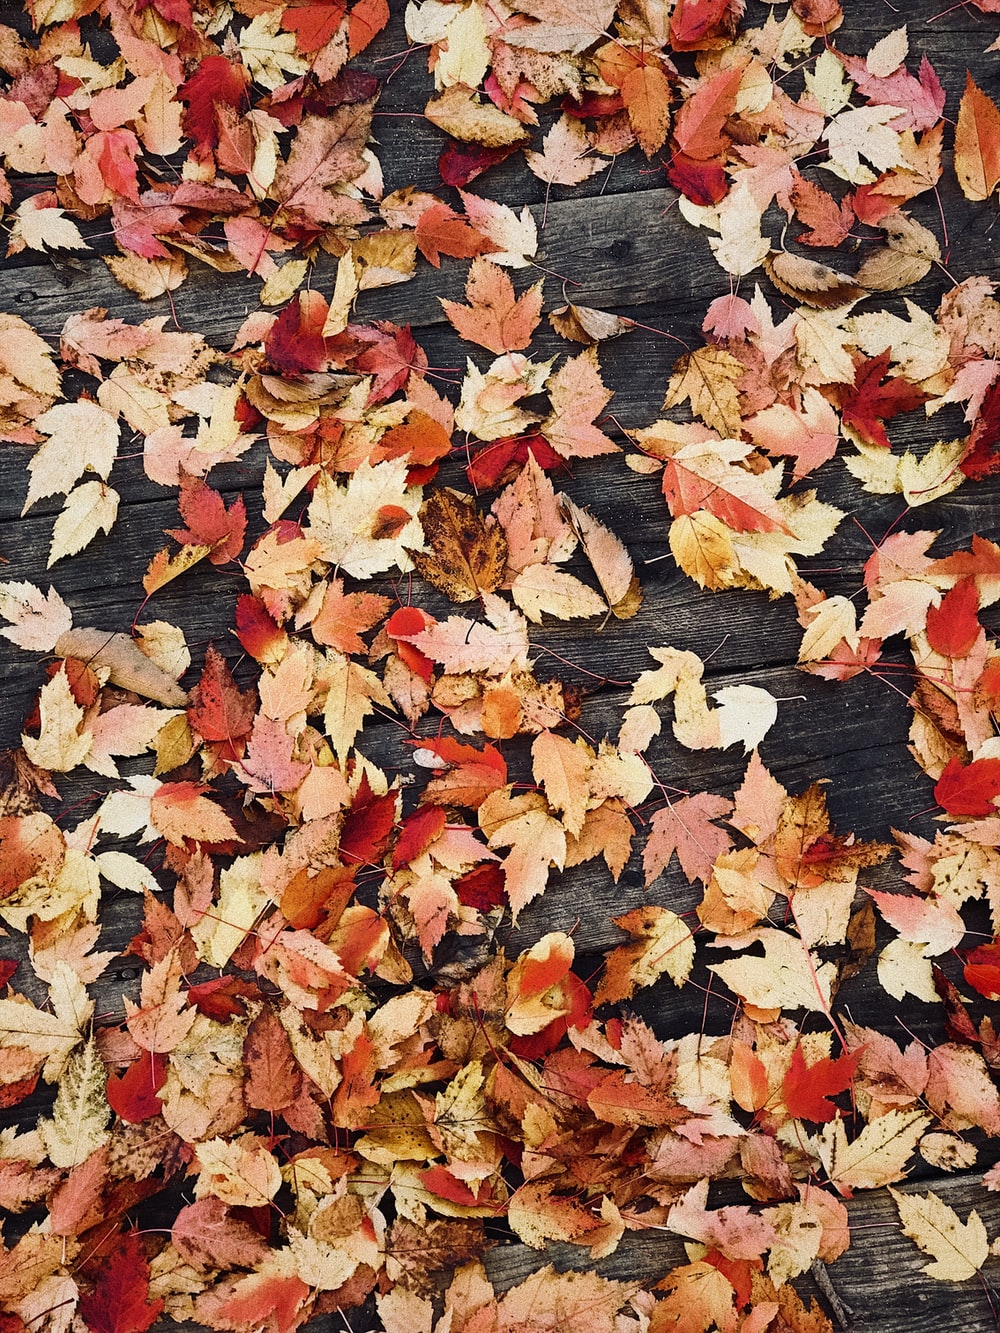 dried leaves on wooden surface